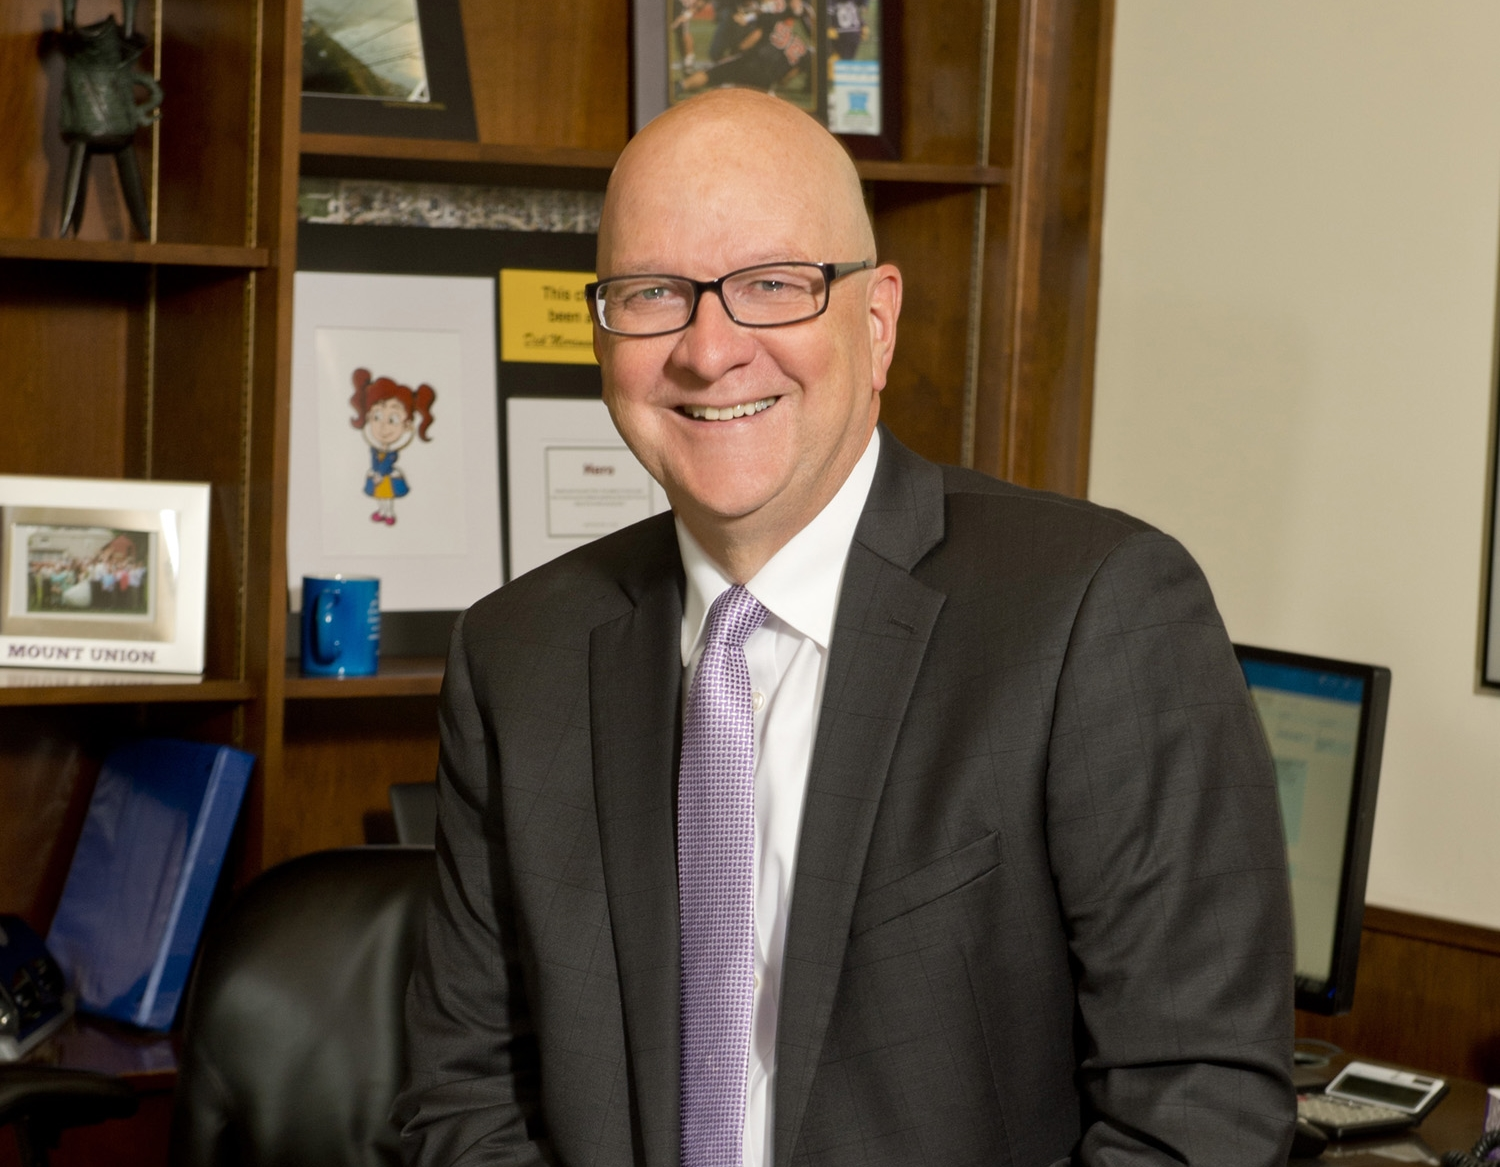 University of Mount Union President Dick Merriman